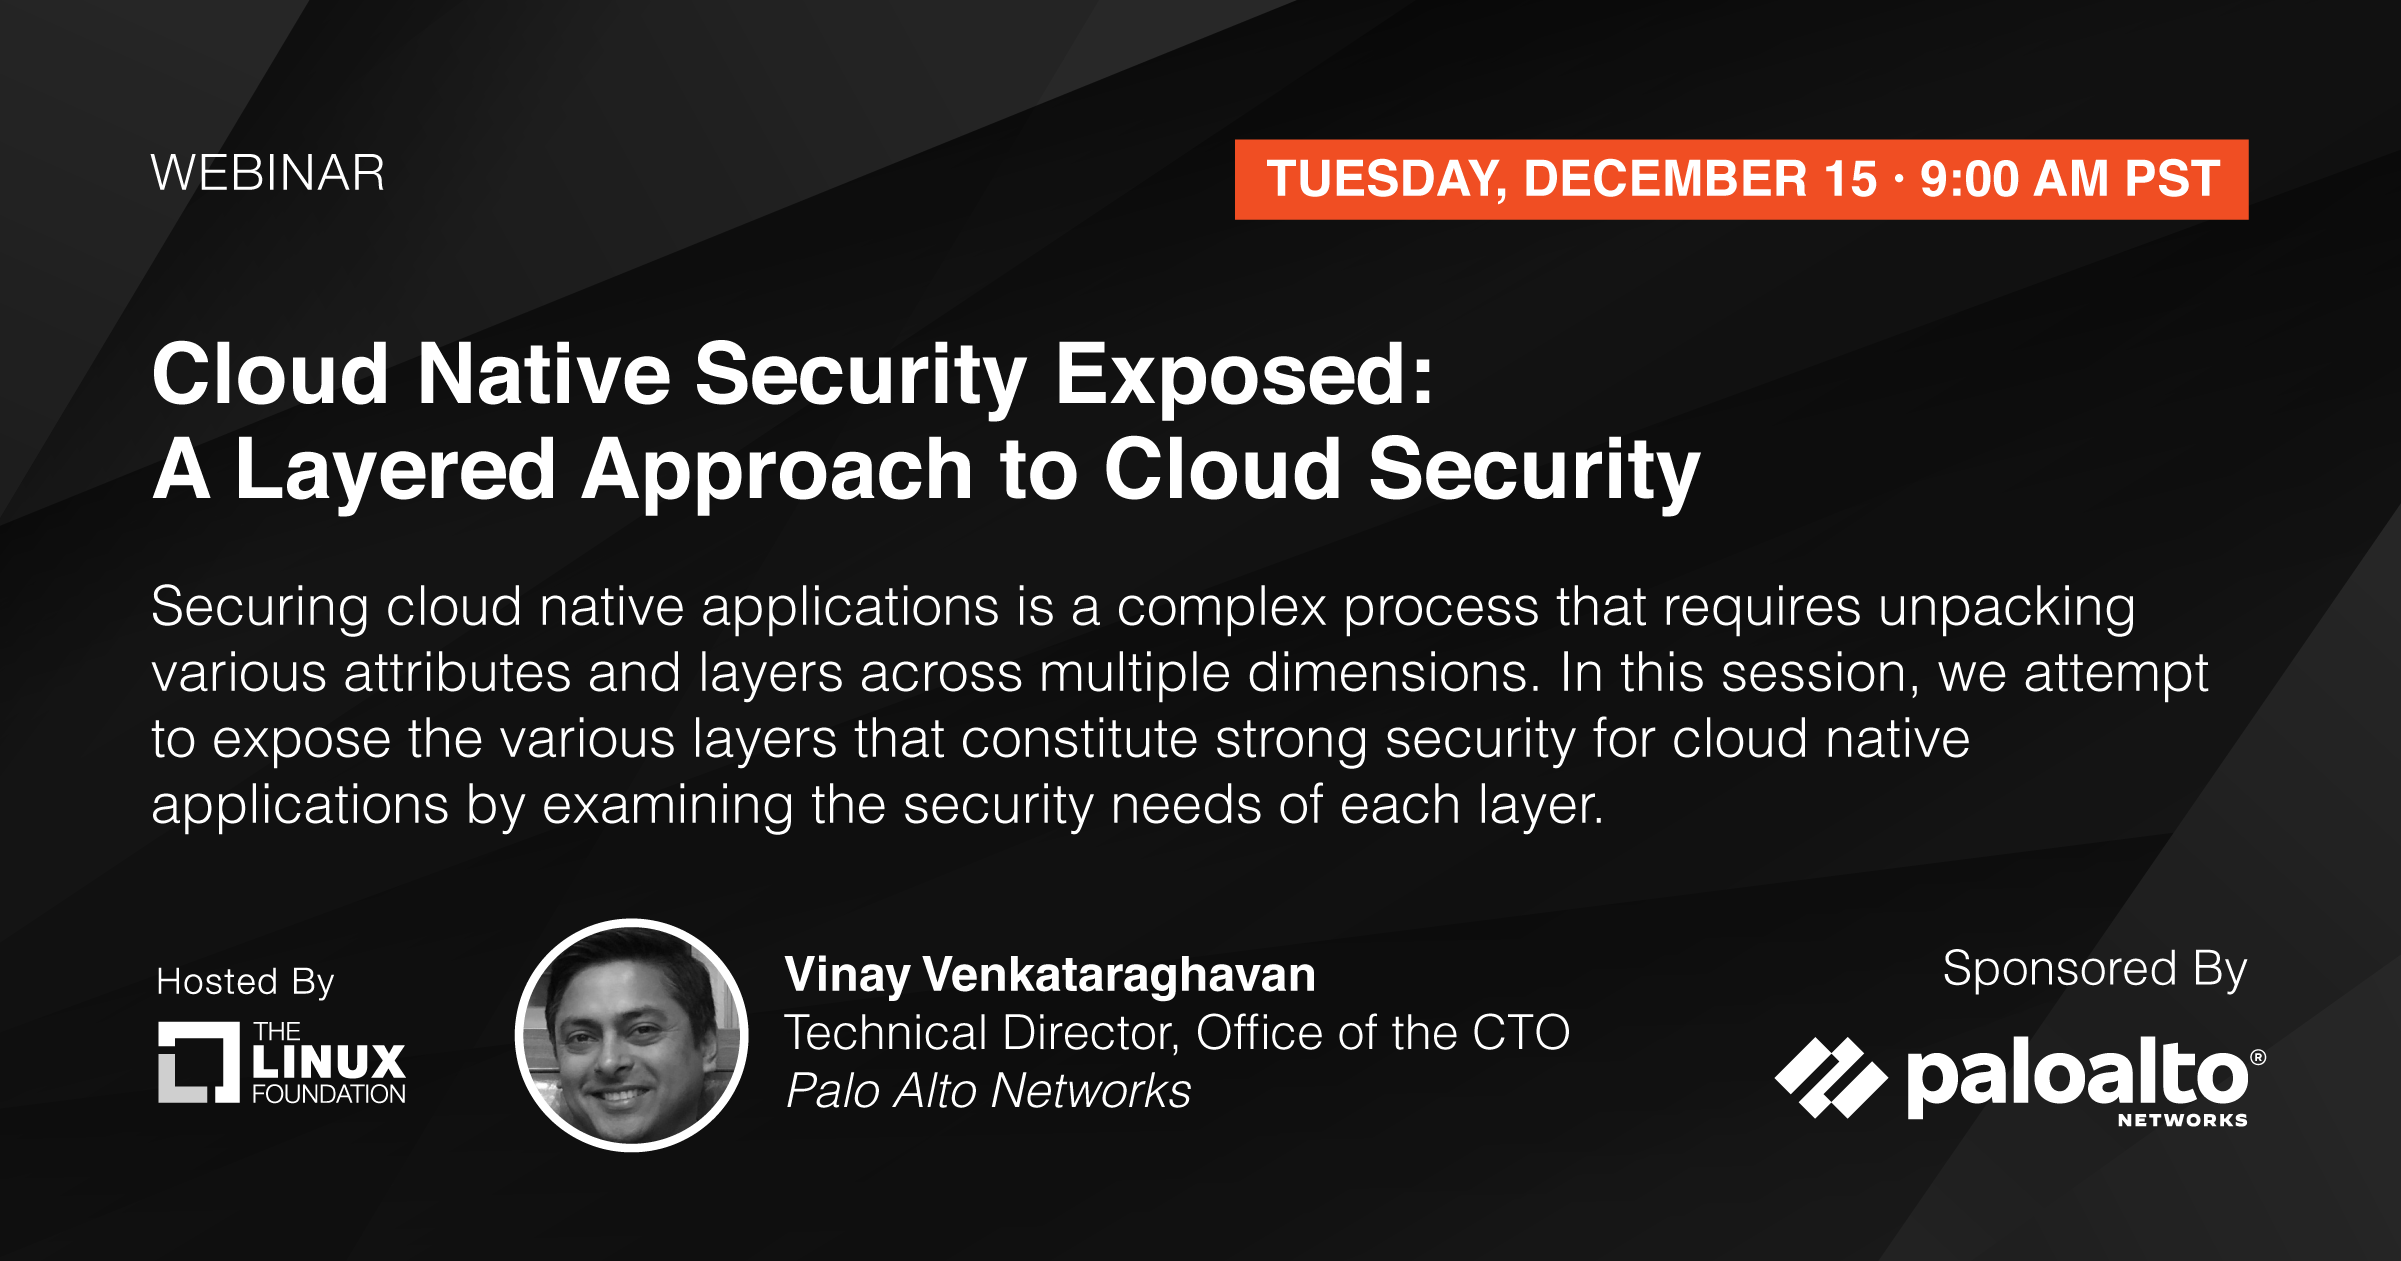 Webinar - Cloud Native Security Exposed: A Layered Approach to Cloud Security